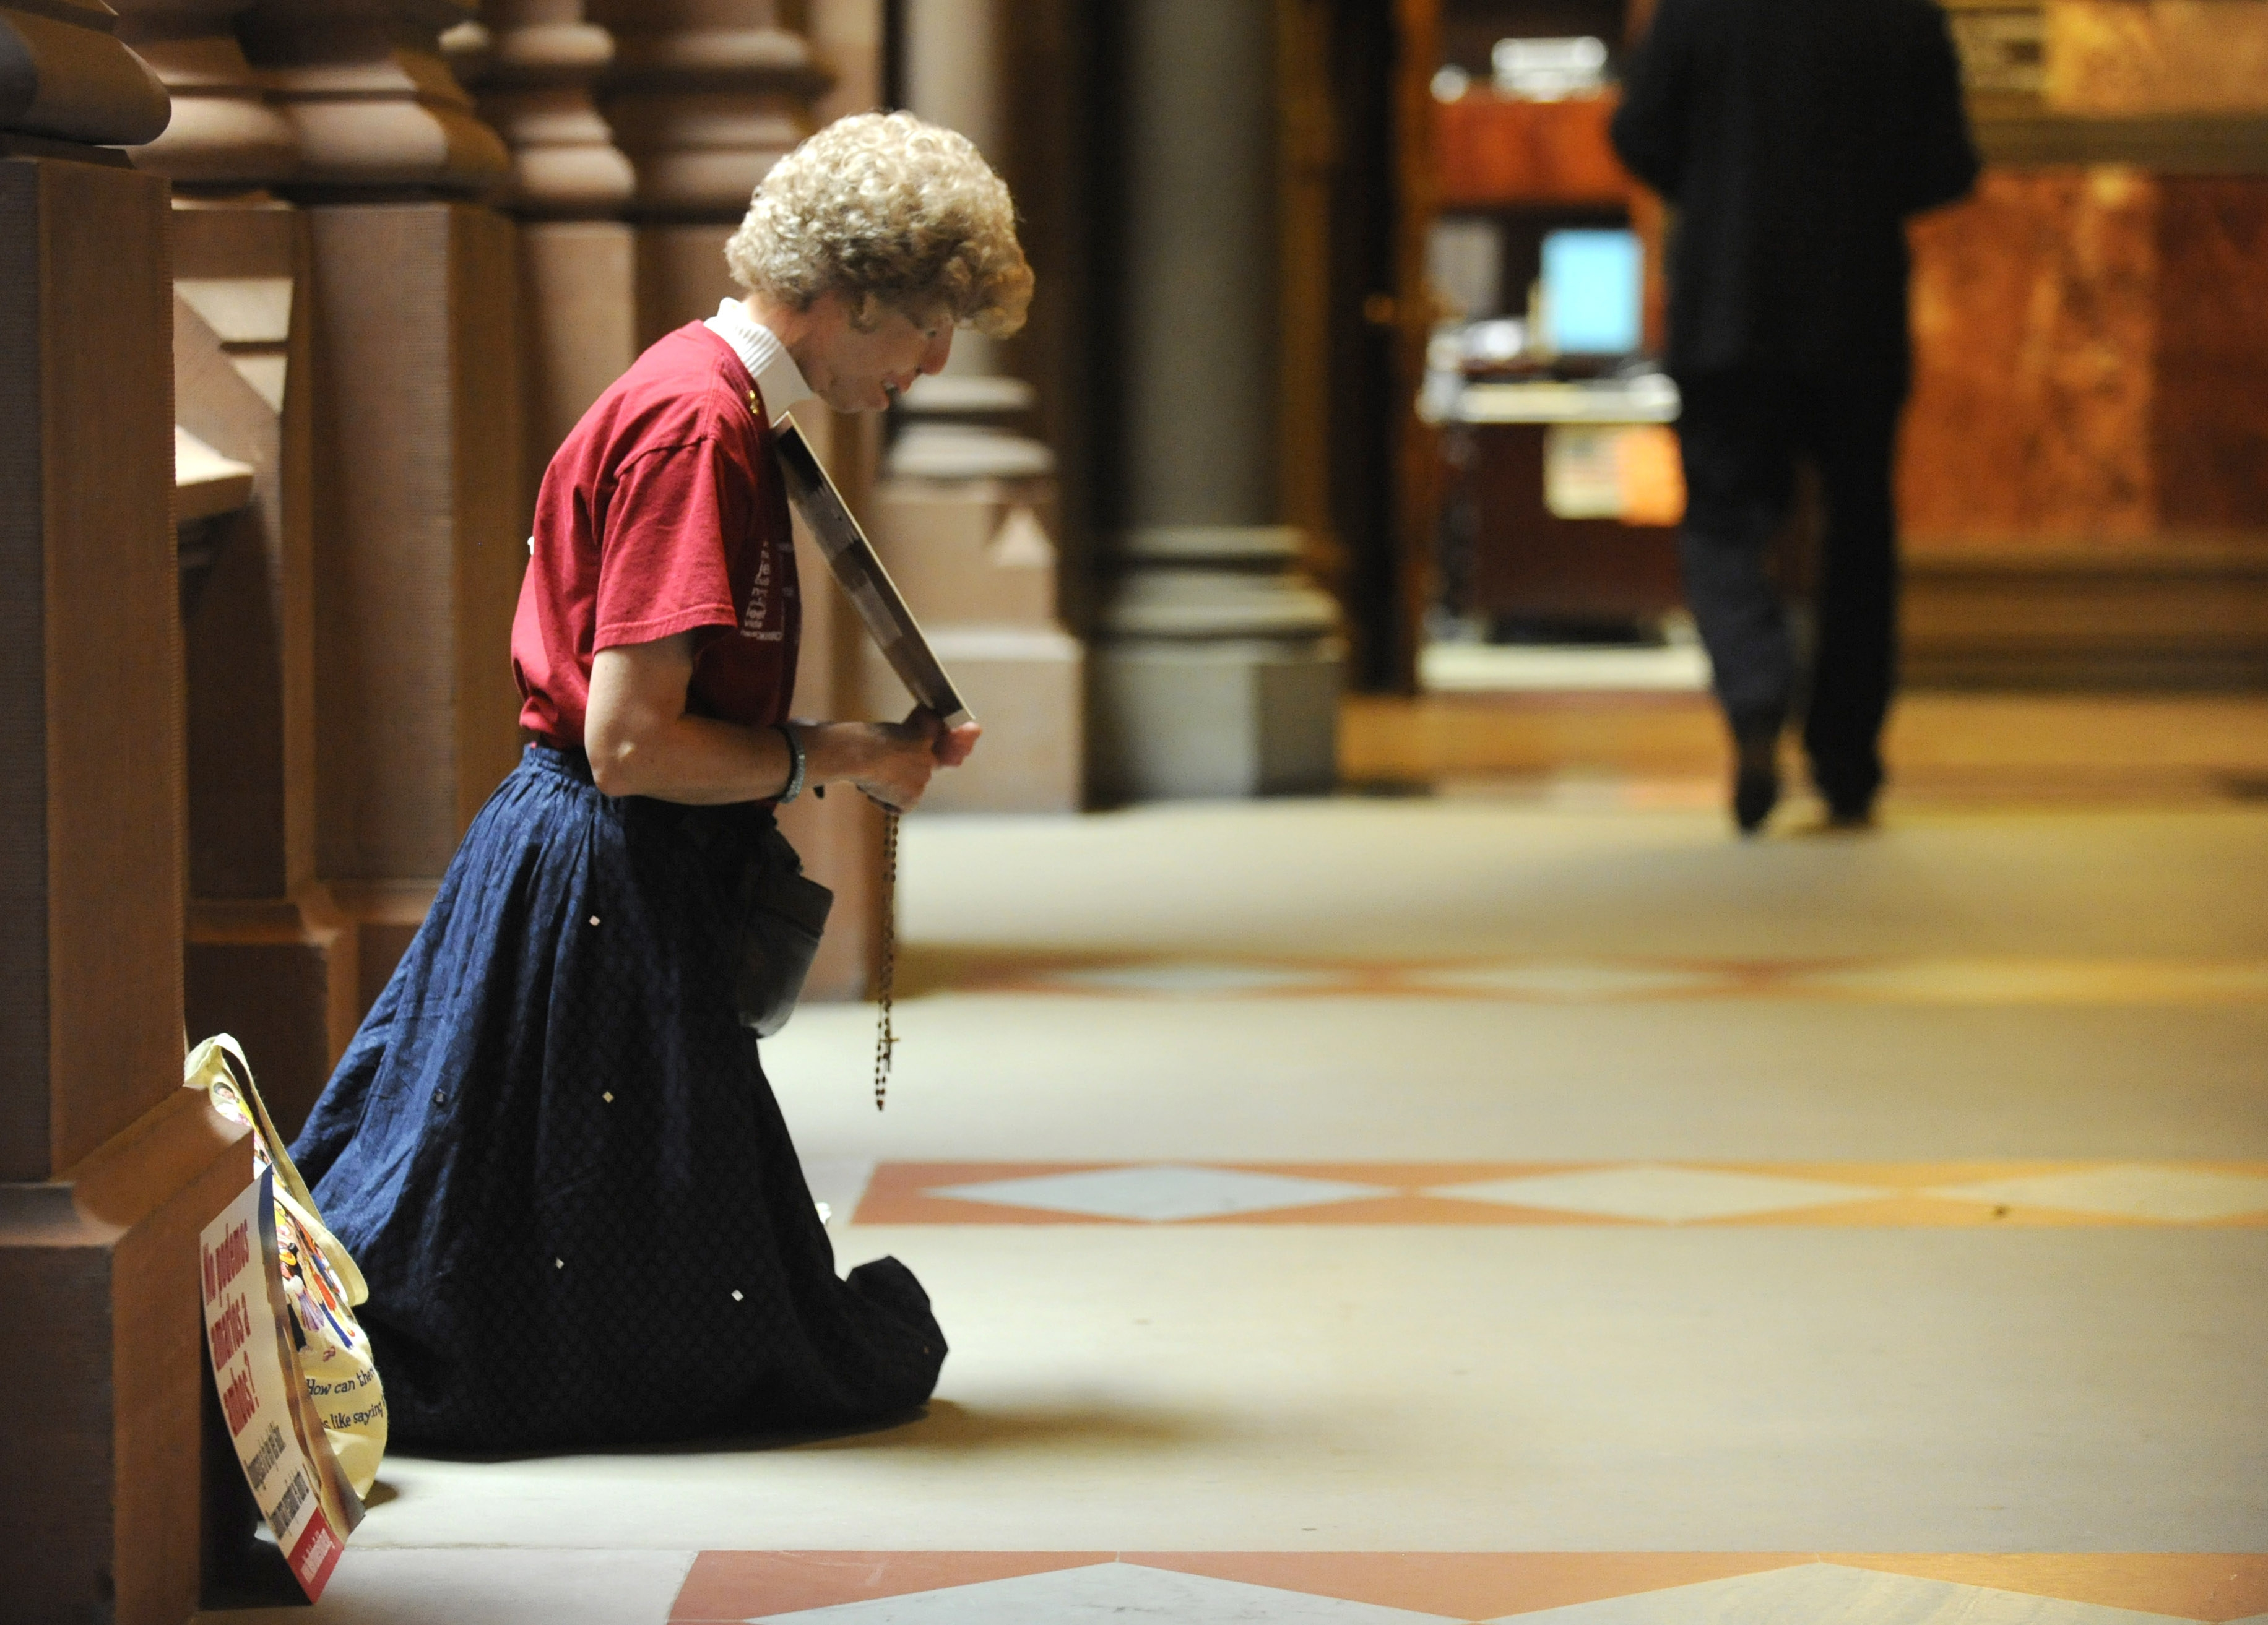 Sheila Blasch, of Albany, prays outside the New York Senate Chamber at the Capitol in Albany, N.Y., on Friday, June 21, 2013 for the final day of the legislative session. Blasch is hoping that the state Senate will not vote for abortion provisions in proposed women's equality legislation.  (AP Photo/Tim Roske)